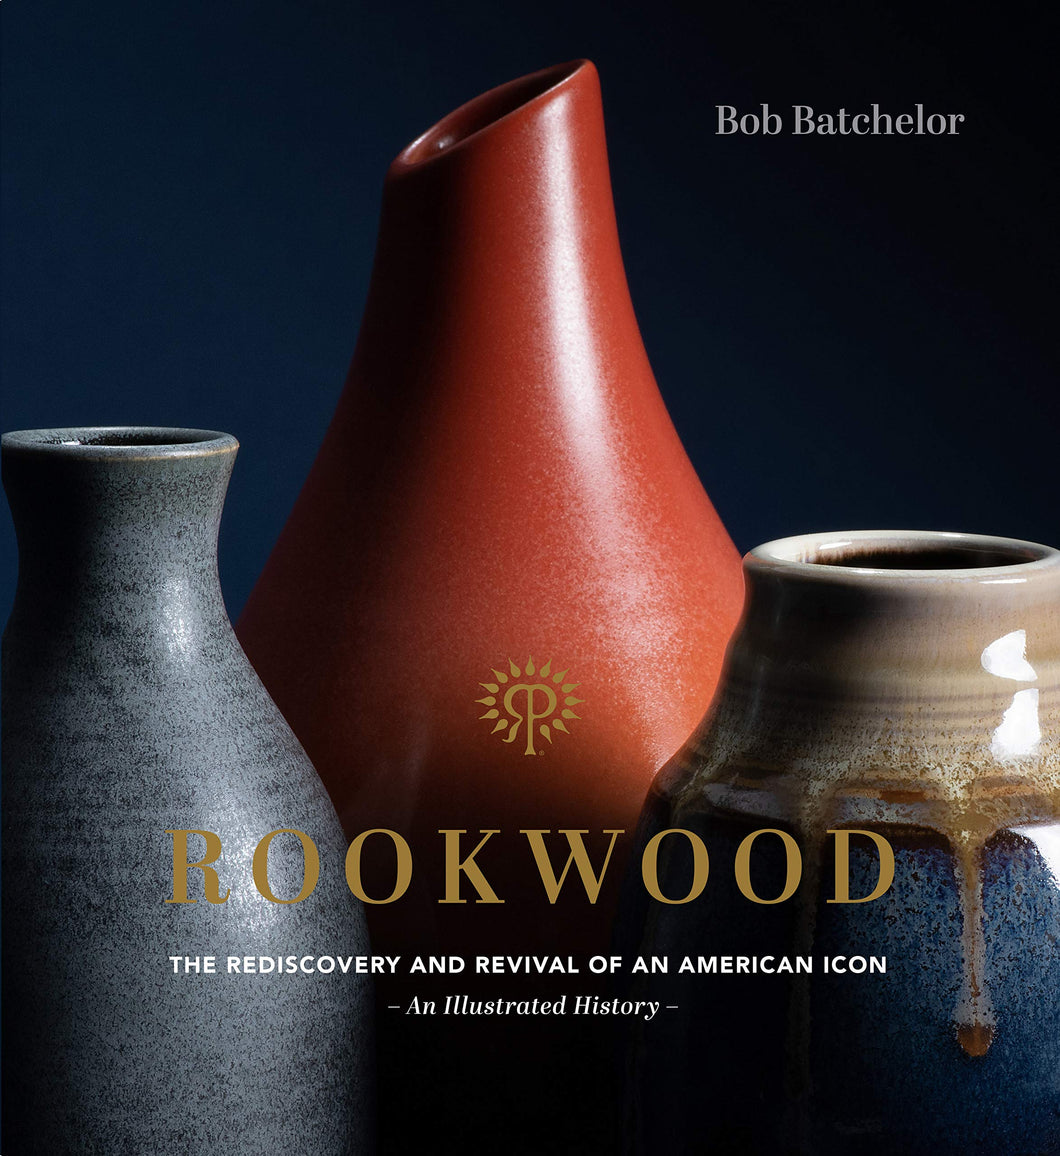 Autographed Copy of Rookwood: The Rediscovery And Revival Of An American Icon (Limited Supply)